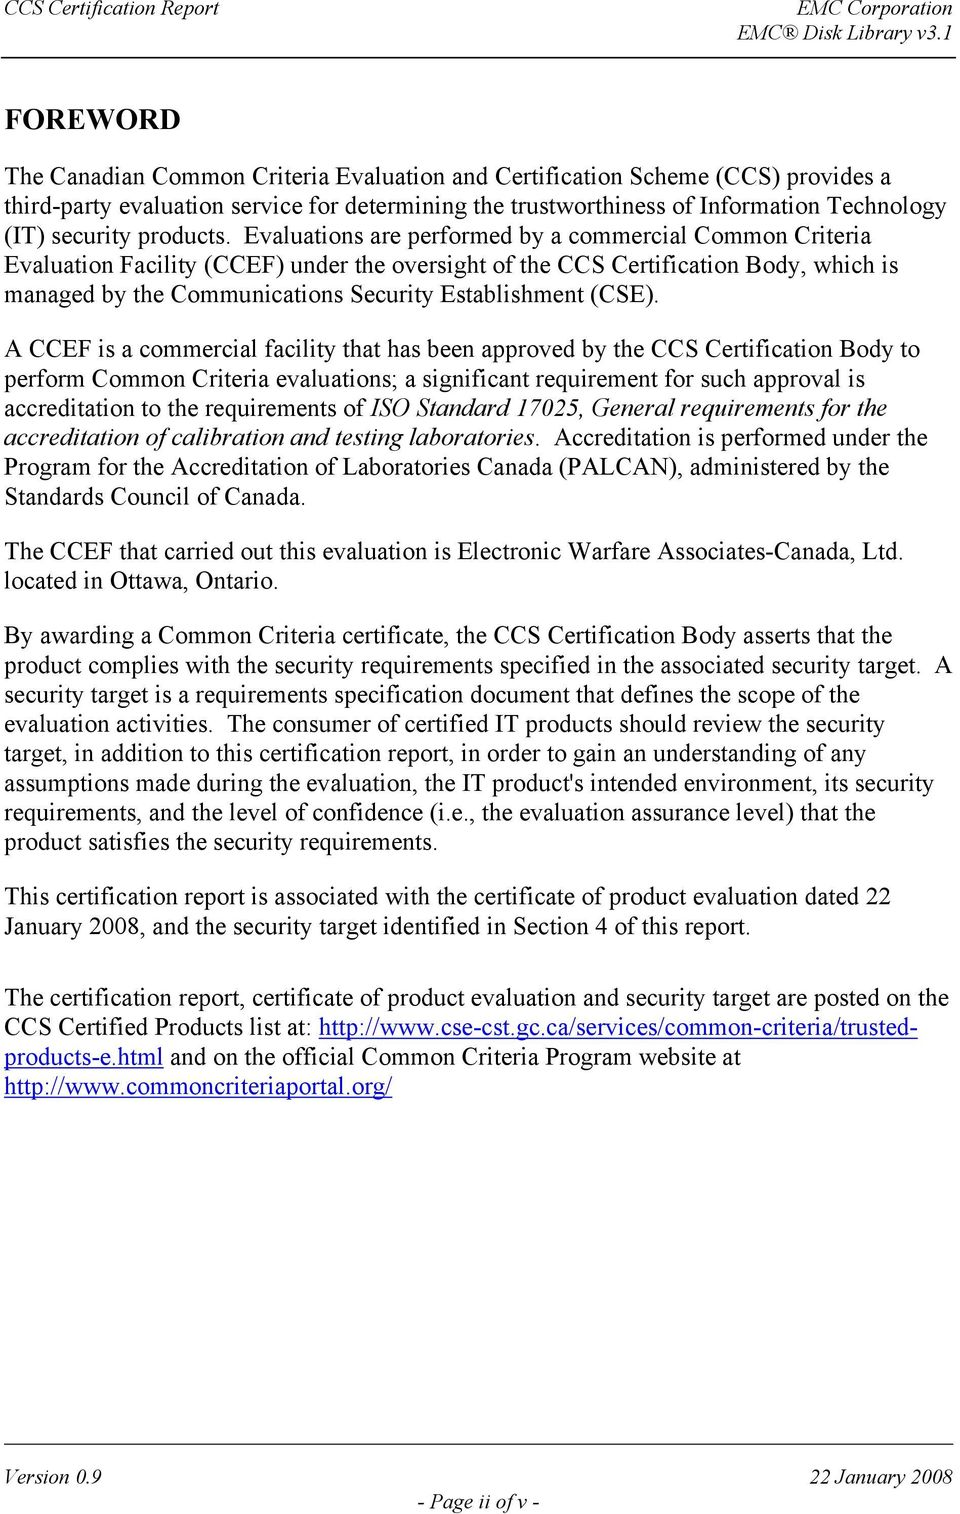 Evaluations are performed by a commercial Common Criteria Evaluation Facility (CCEF) under the oversight of the CCS Certification Body, which is managed by the Communications Security Establishment